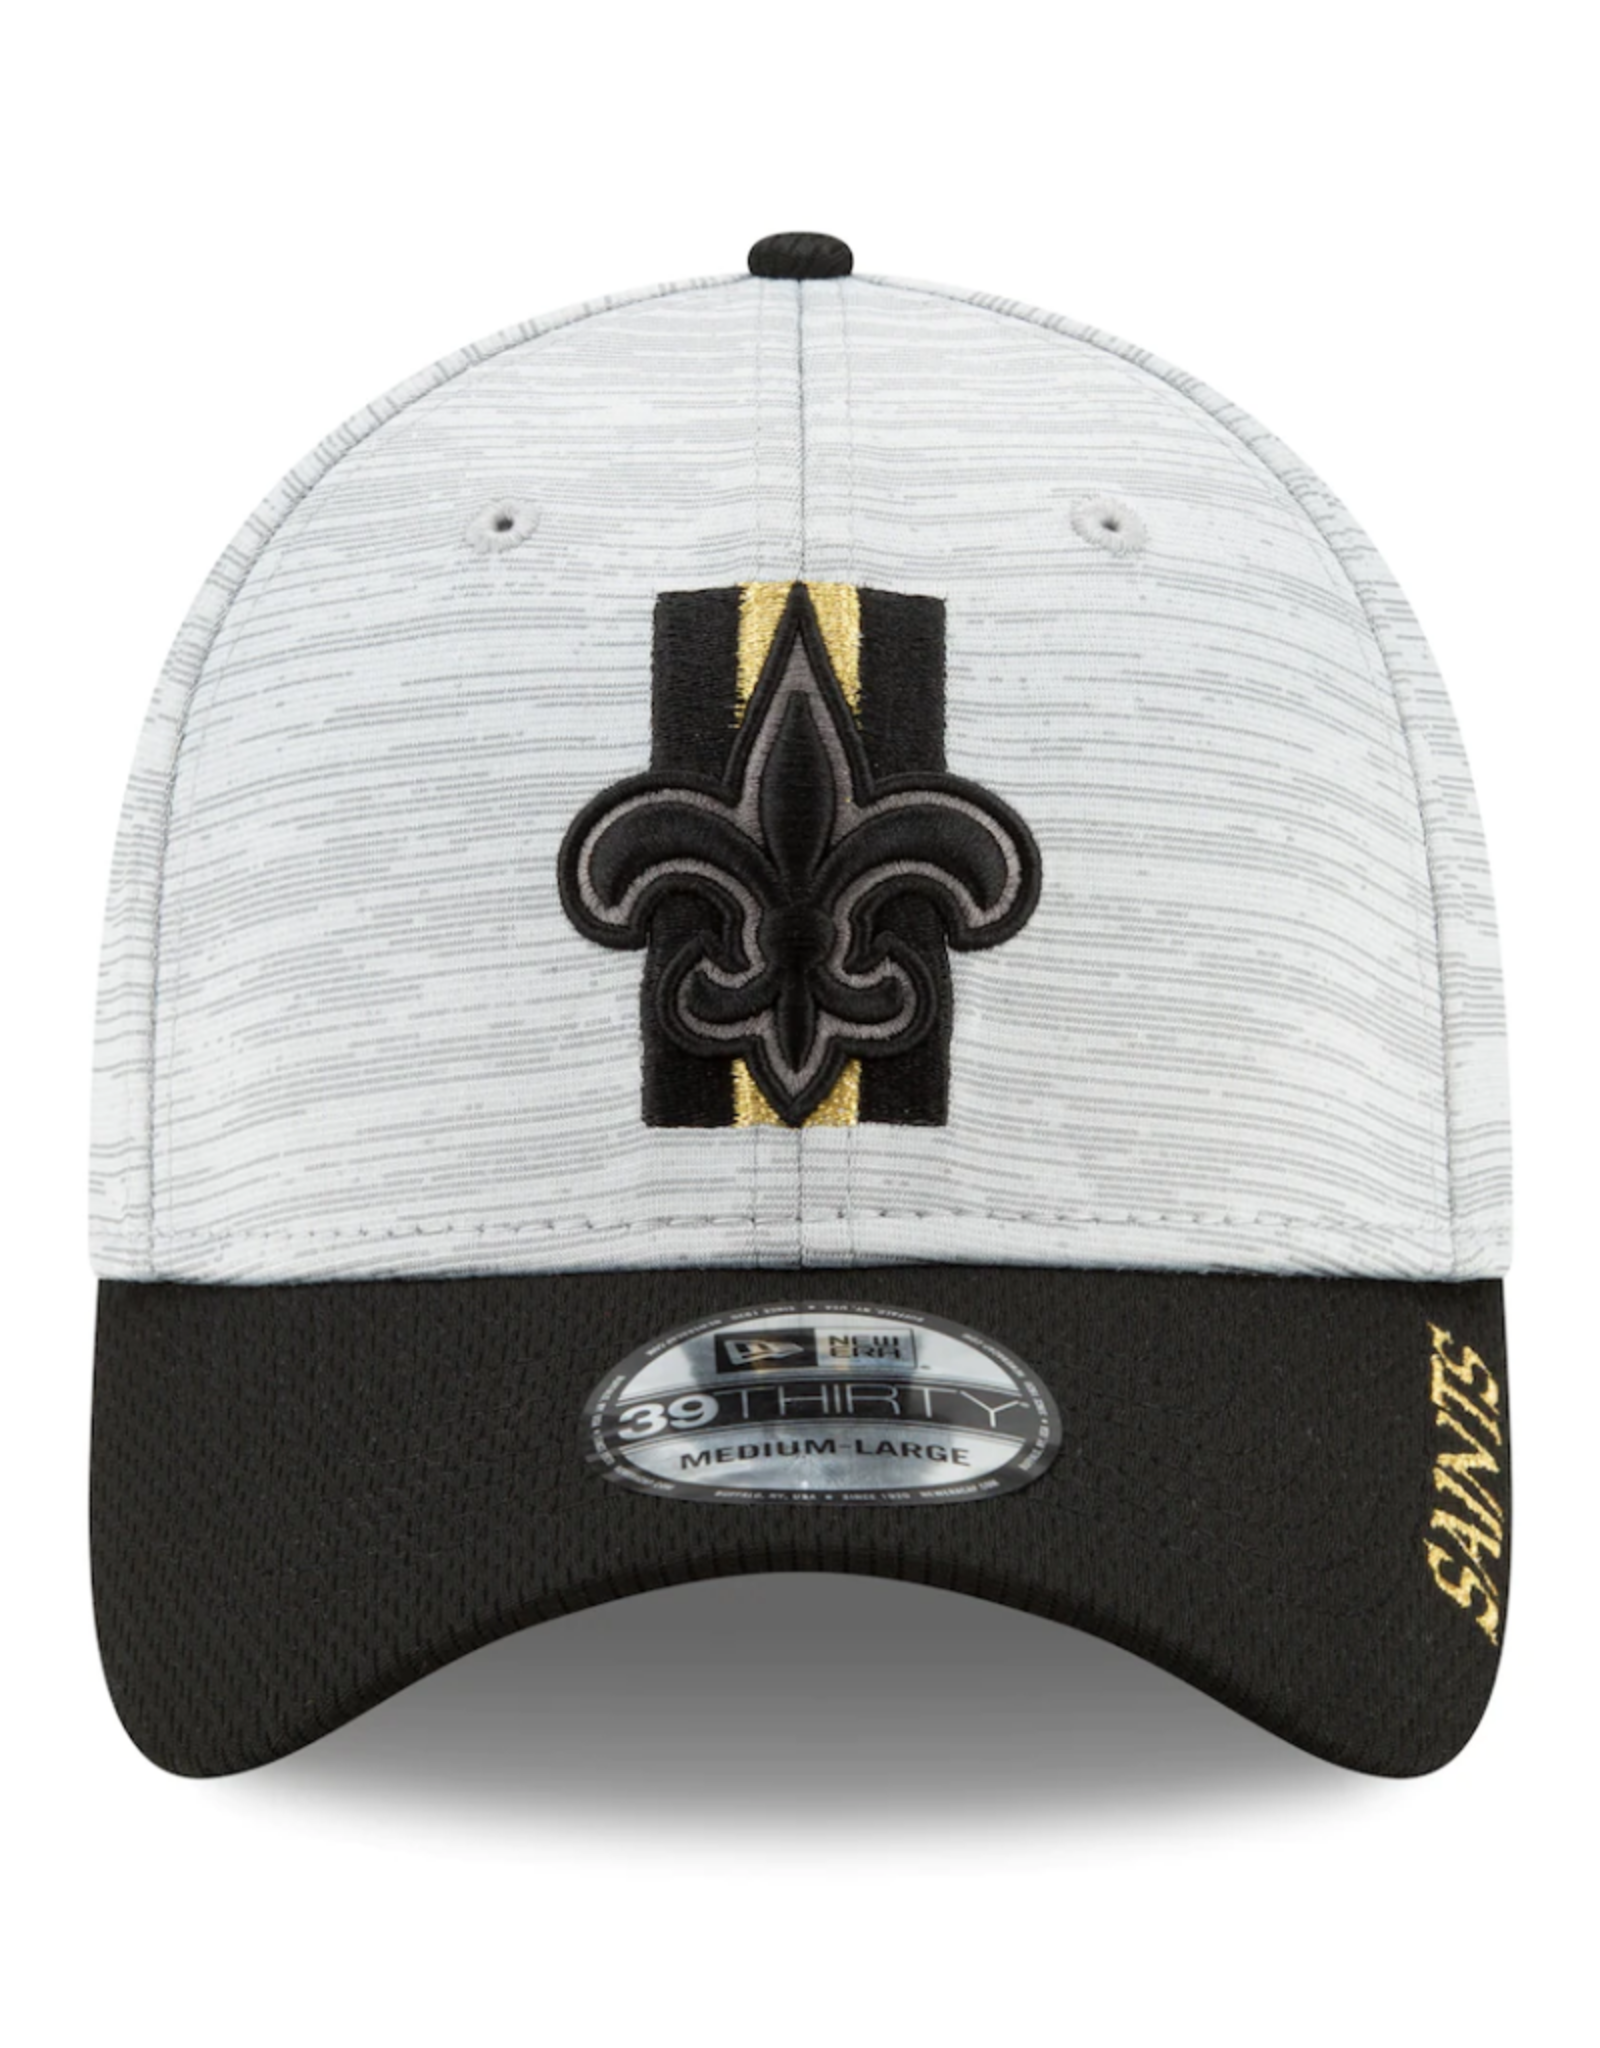 New Era '21 39THIRTY Official Training Hat New Orleans Saints Grey/Black